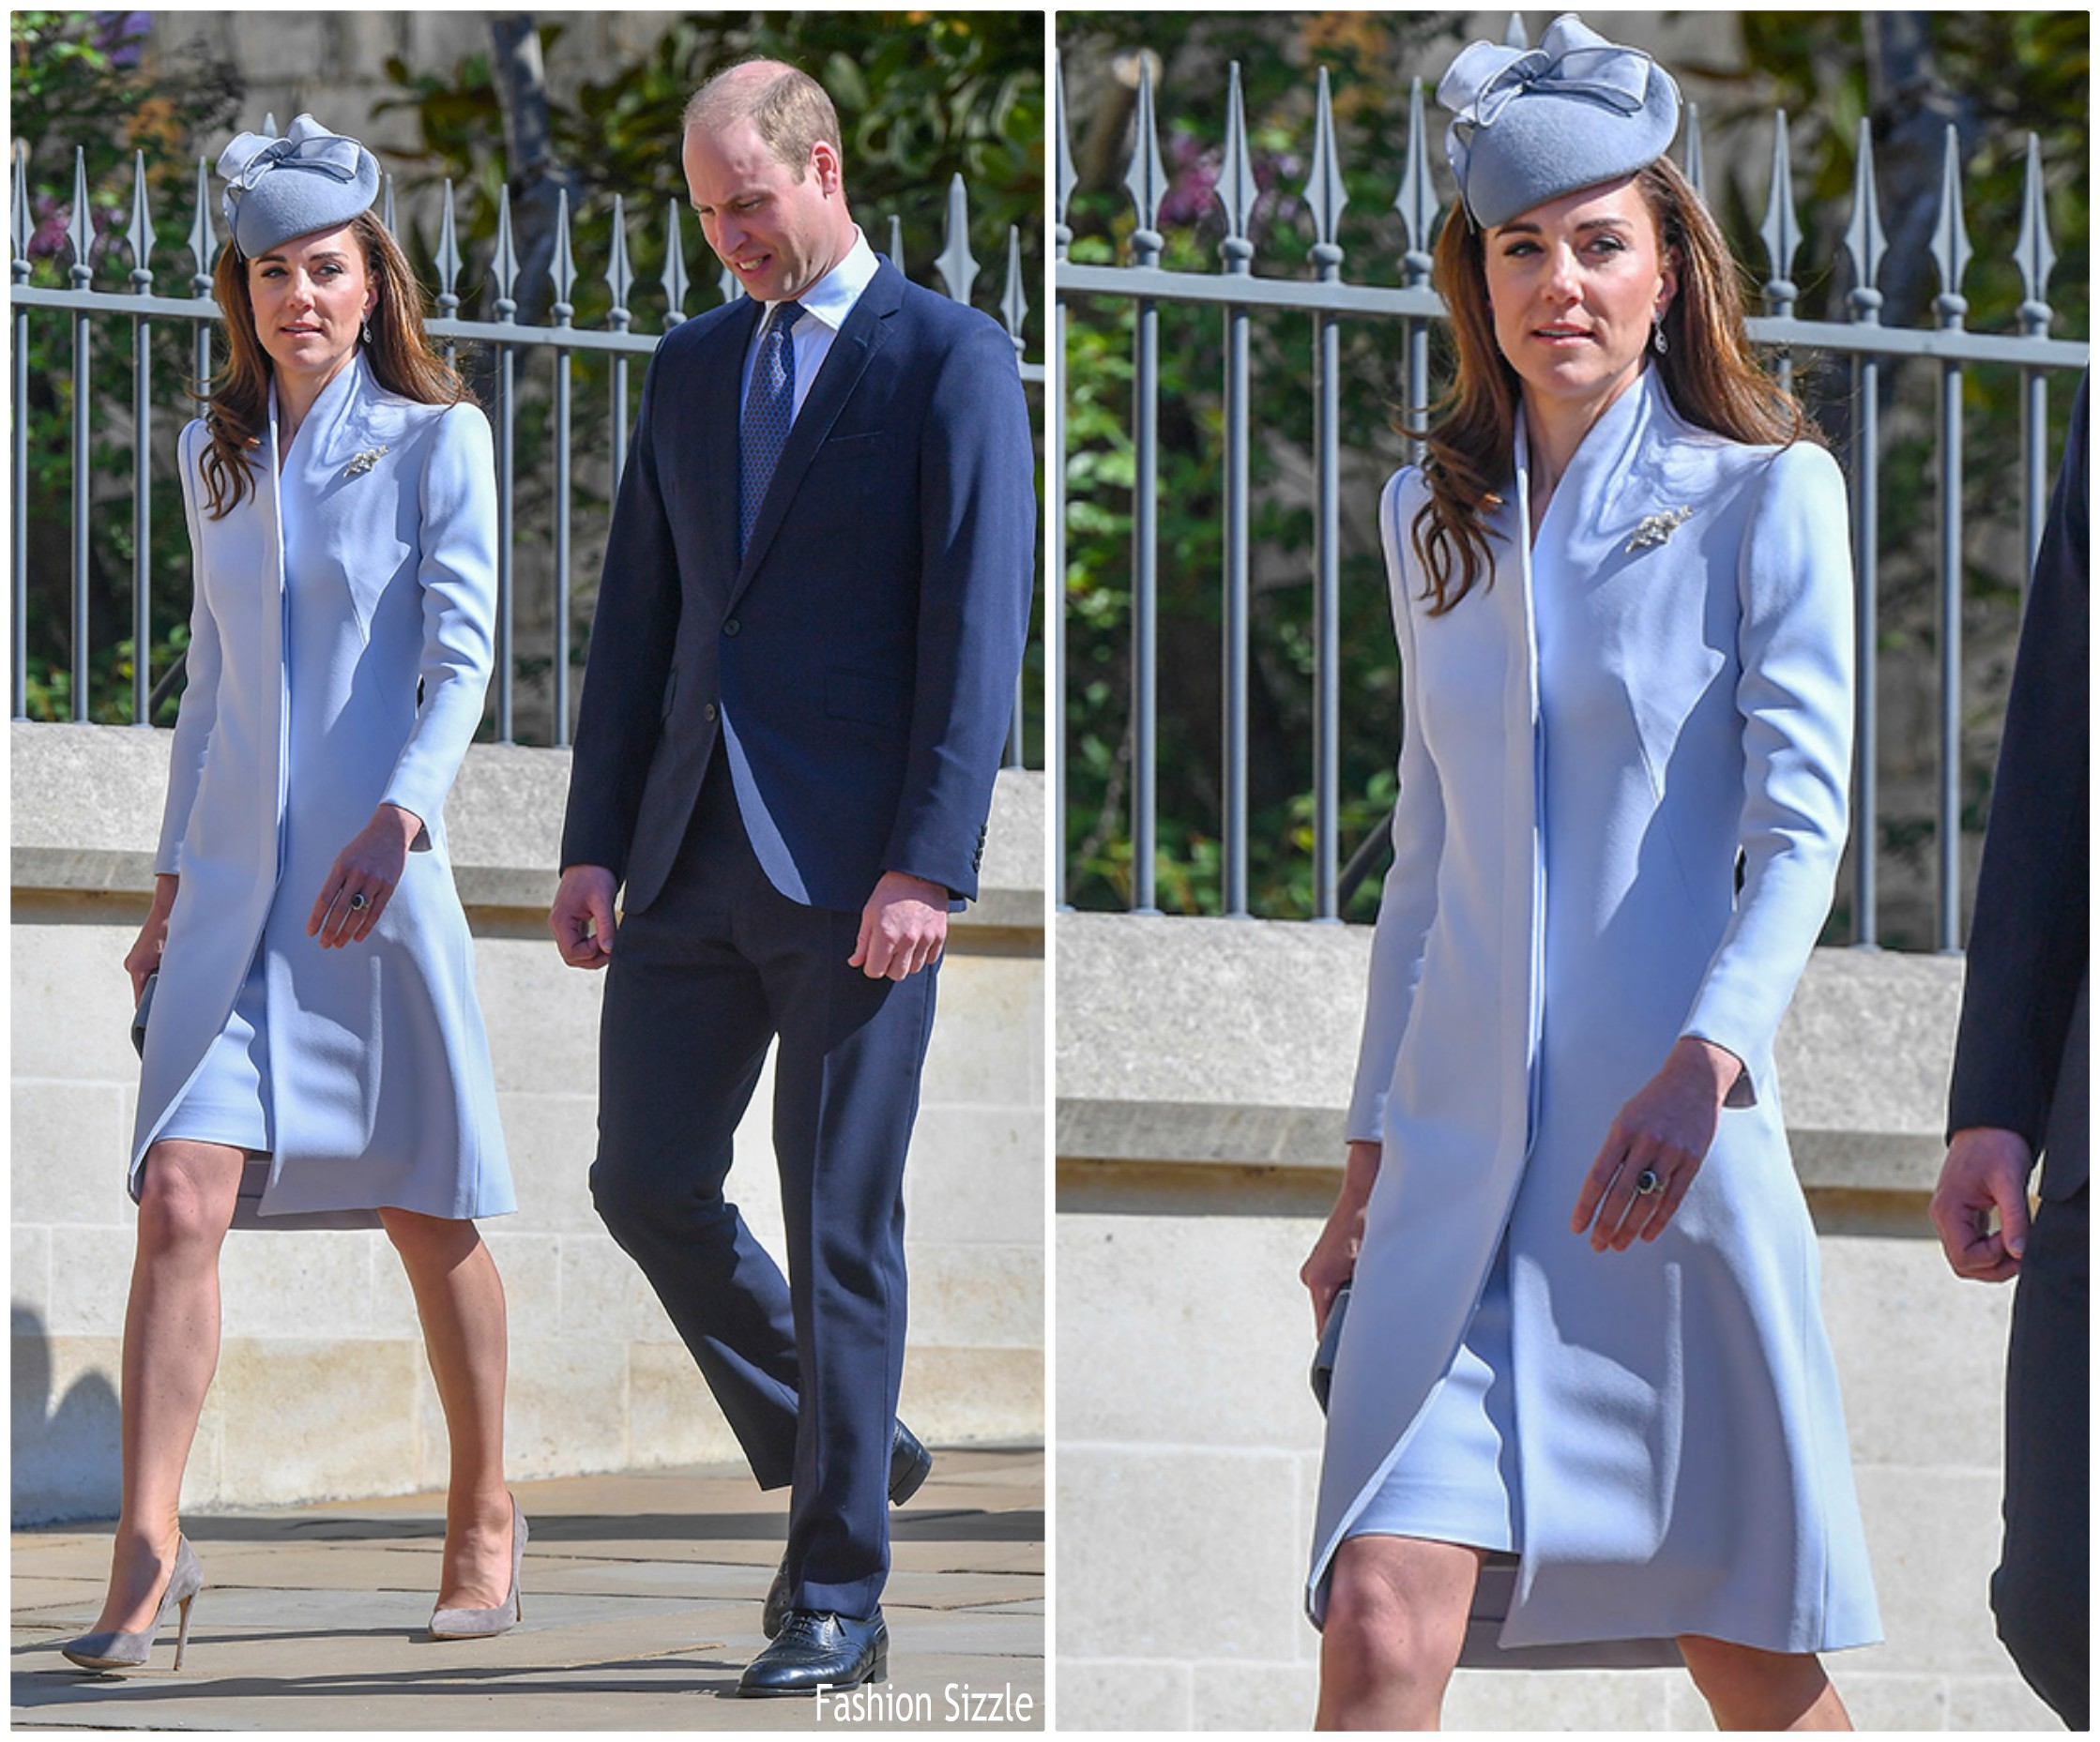 catherine-duchess-of-cambridge-in-alexander-mcqueen-easter-sunday-service